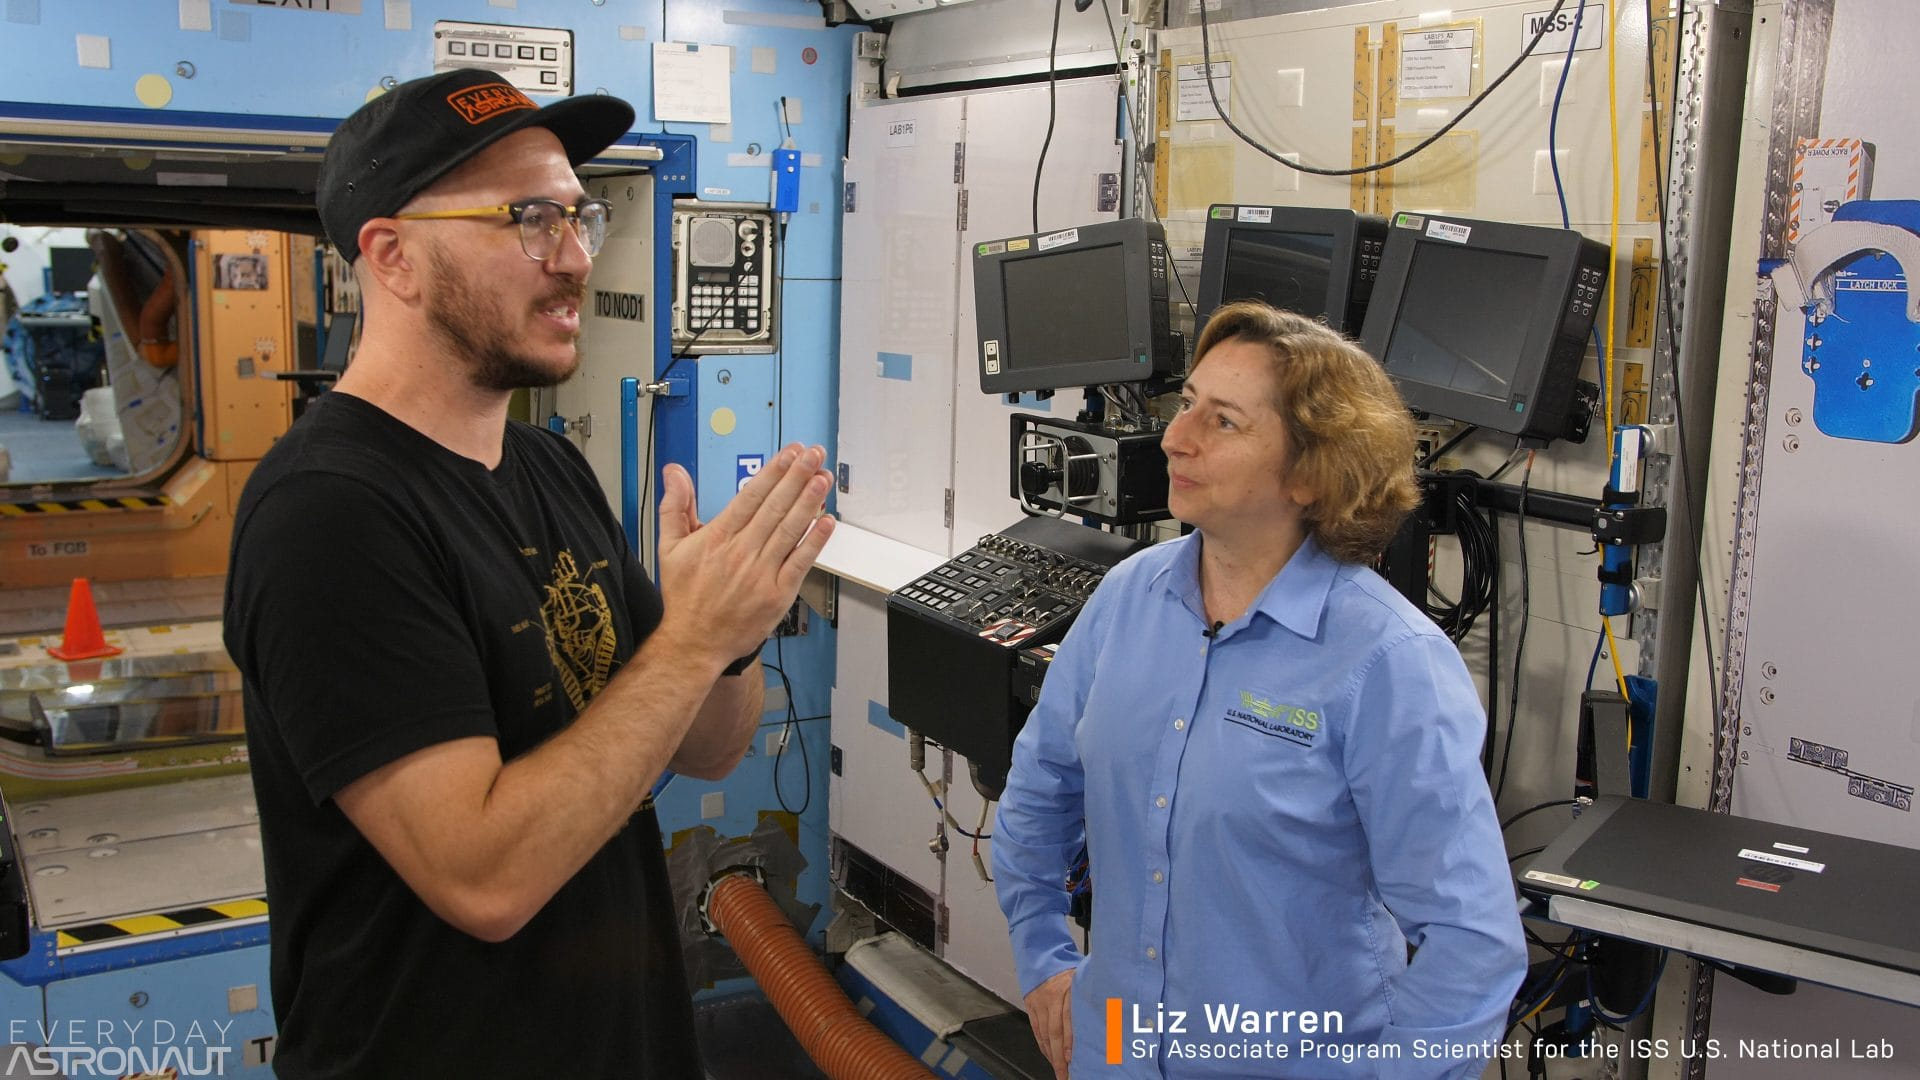 Tim Dodd Everyday Astronaut Liz Warren NASA ISS